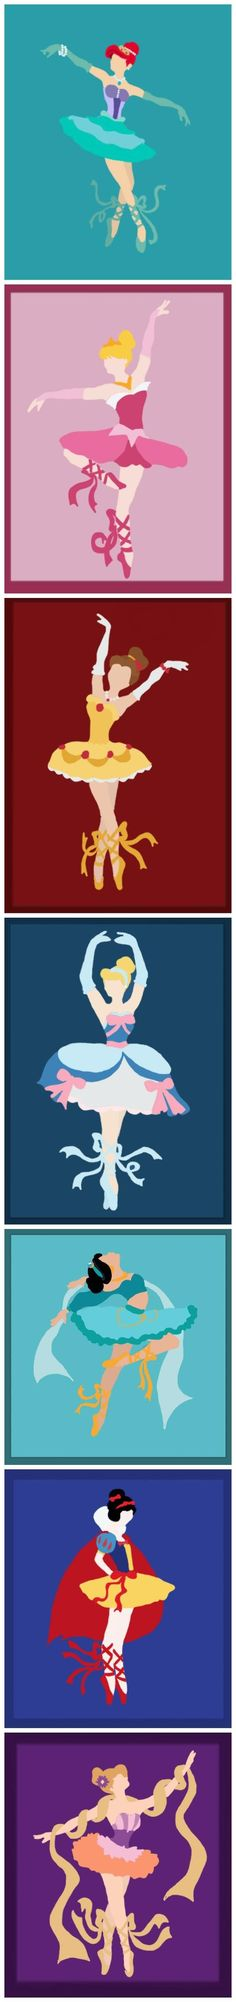 Disney princesses as ballerinas! I love this *^* I wish that I could do pointe, but perhaps I could do a Disney ballerina cosplay with basic ballet shoes Disney Magic, Walt Disney, Cute Disney, Disney Girls, Funny Disney, Disney Princess Clothes, Disney And Dreamworks, Disney Pixar, Disney Characters